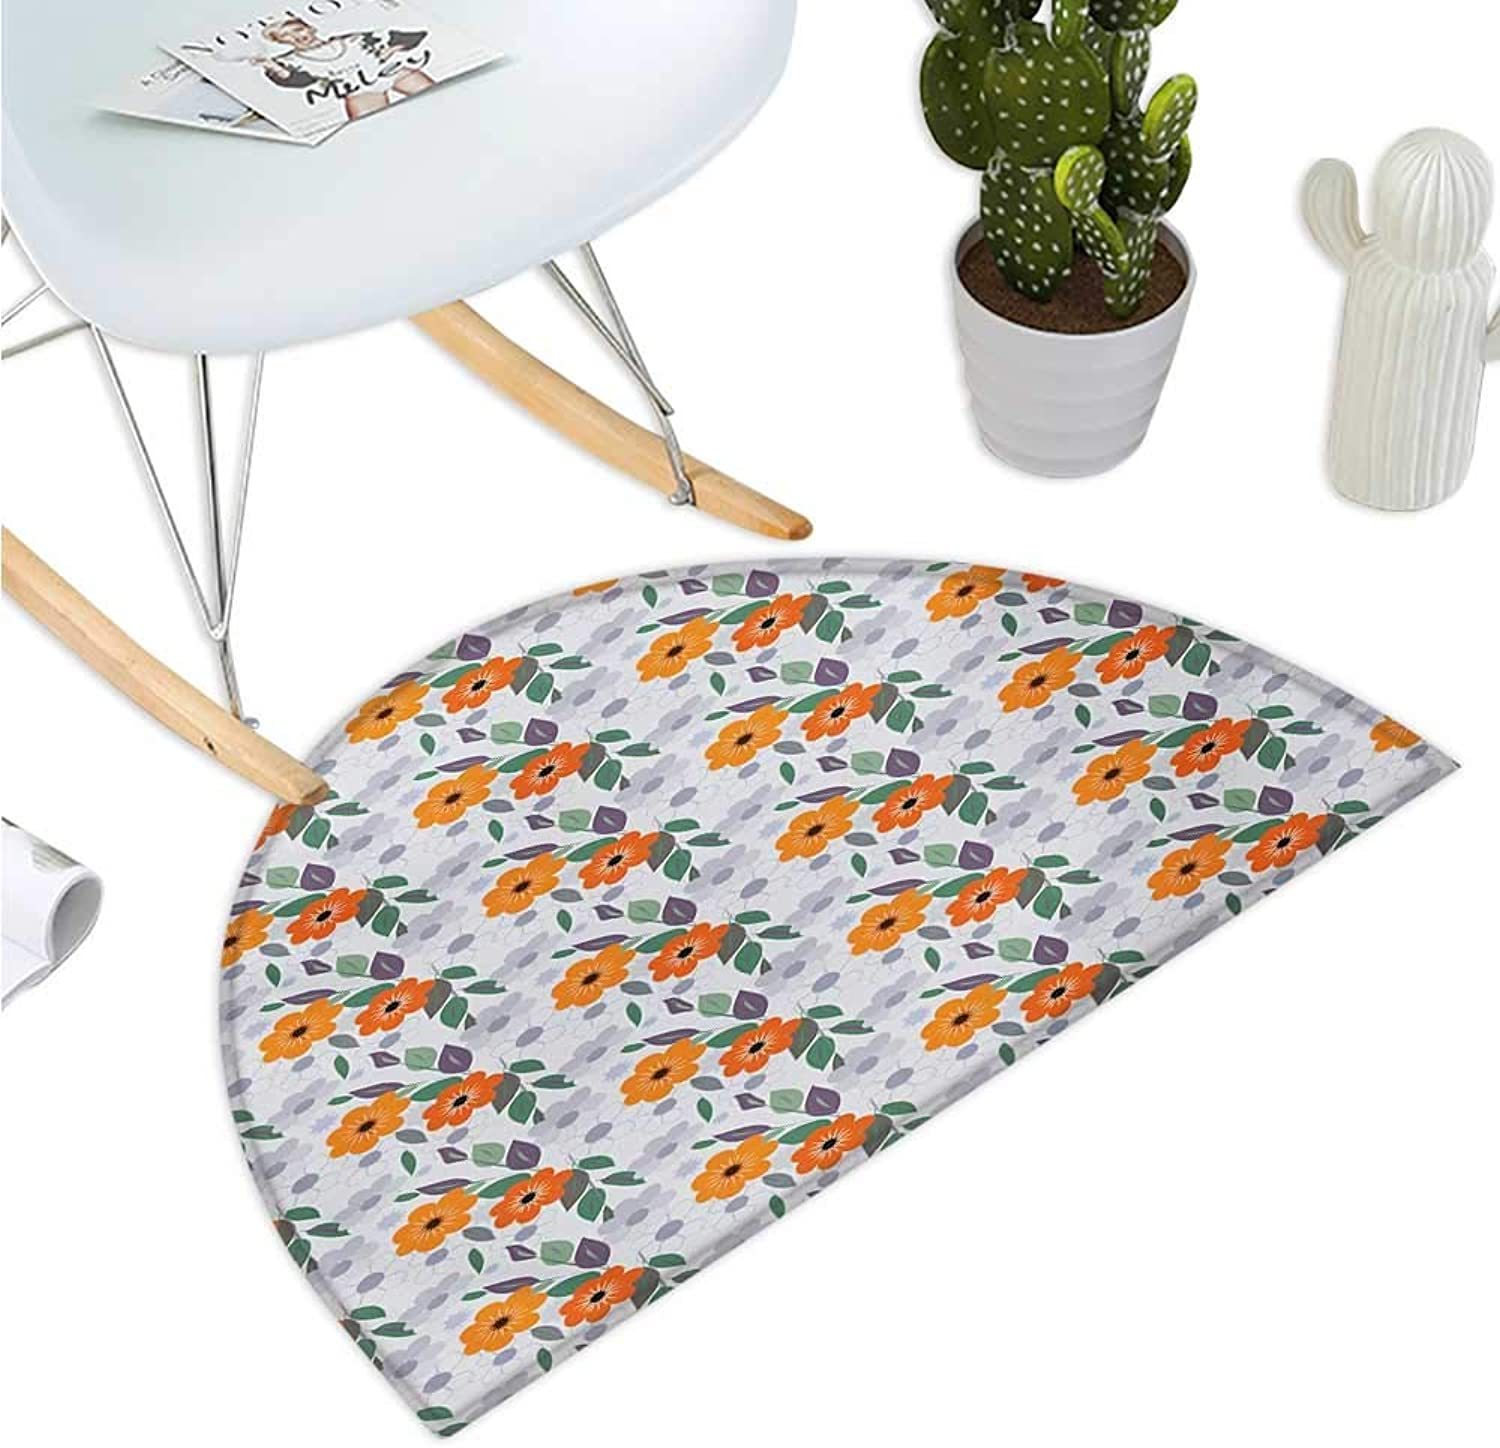 Floral Semicircular Cushion Pastel colord Spring Blossom Field Essence Nostalgic Feminine Mother Nature Petals Bathroom Mat H 39.3  xD 59  Multicolor